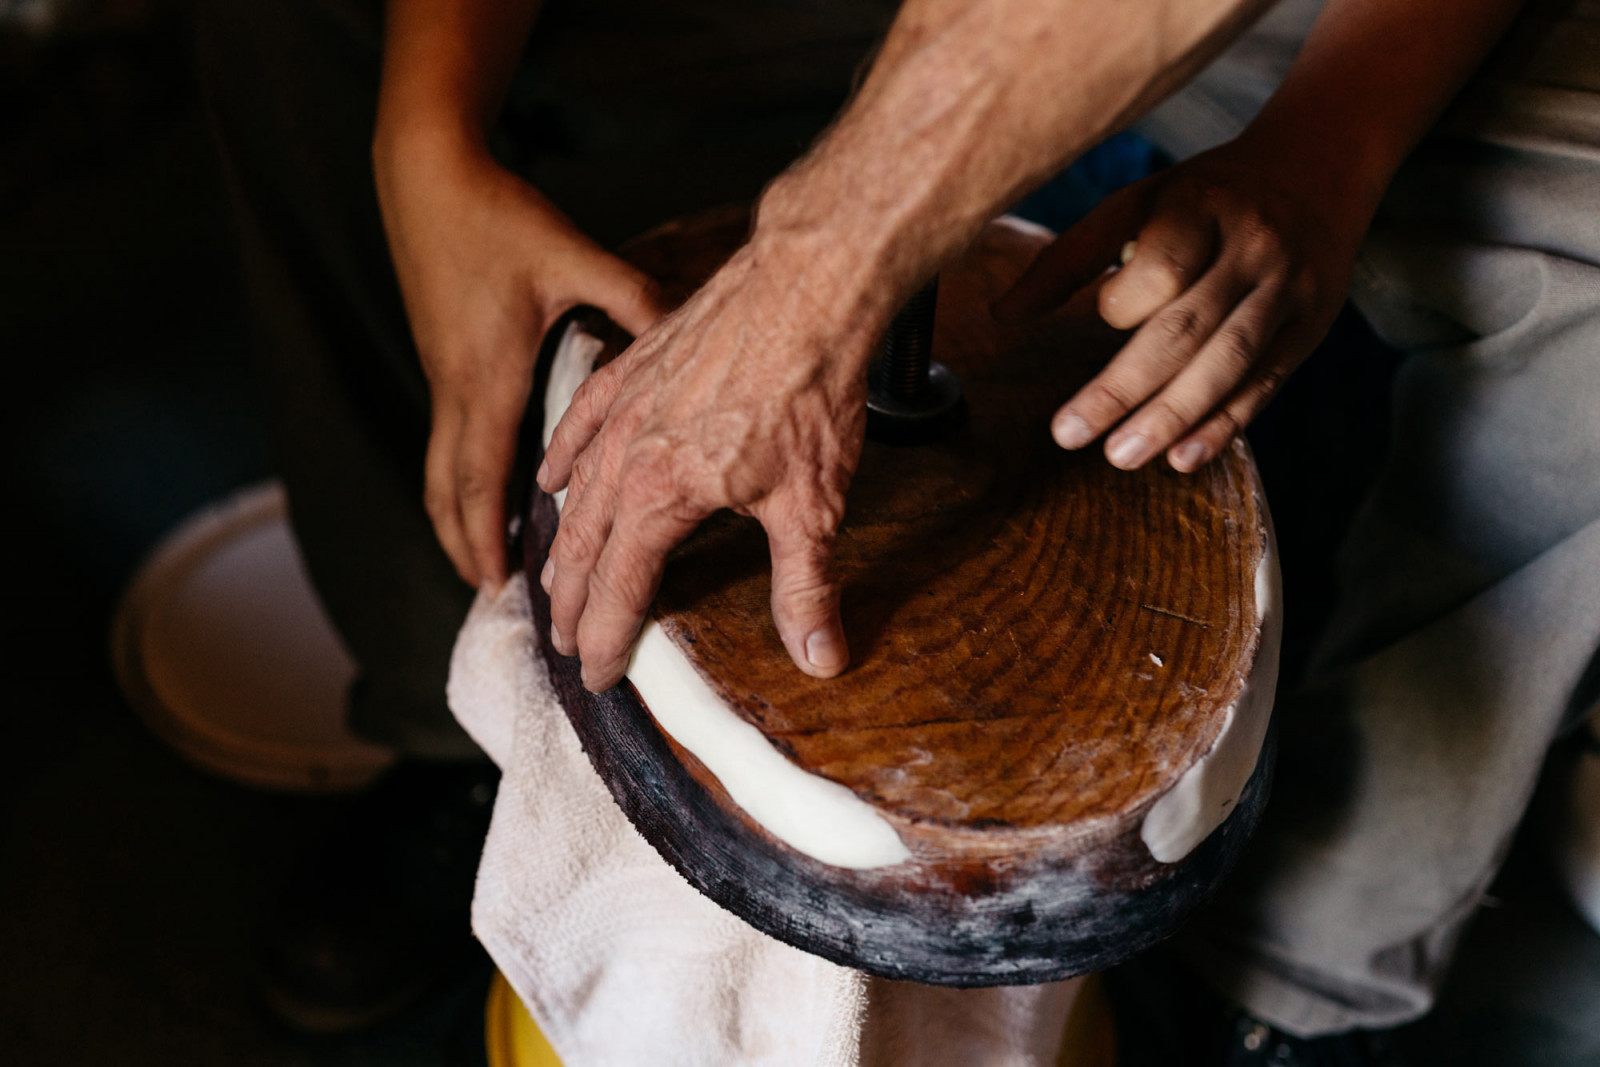 Close-up of two sets of hands working on barrels